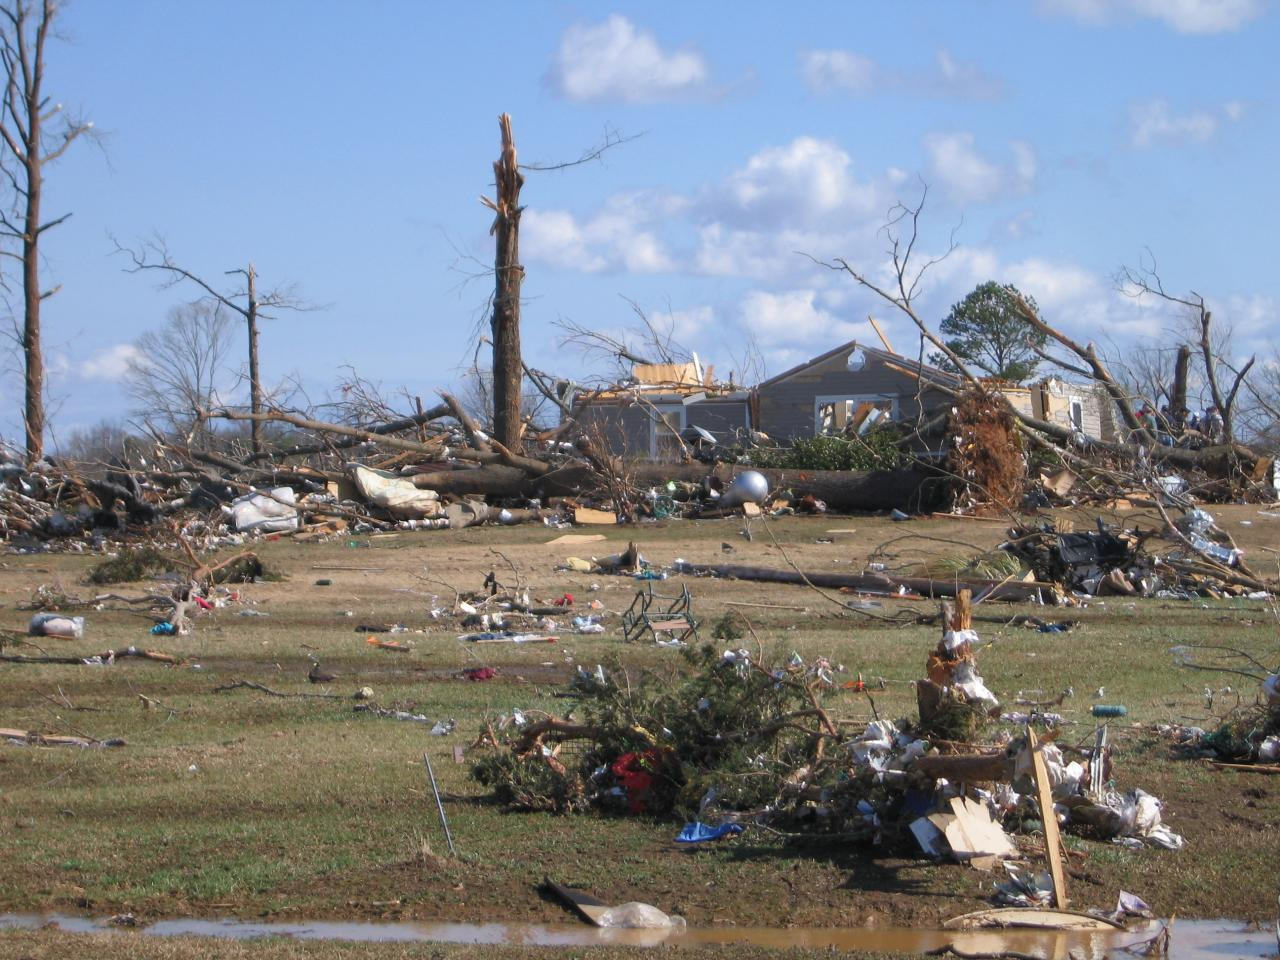 Lawrence-Morgan Counties, AL EF4 Tornado – February 6, 2008